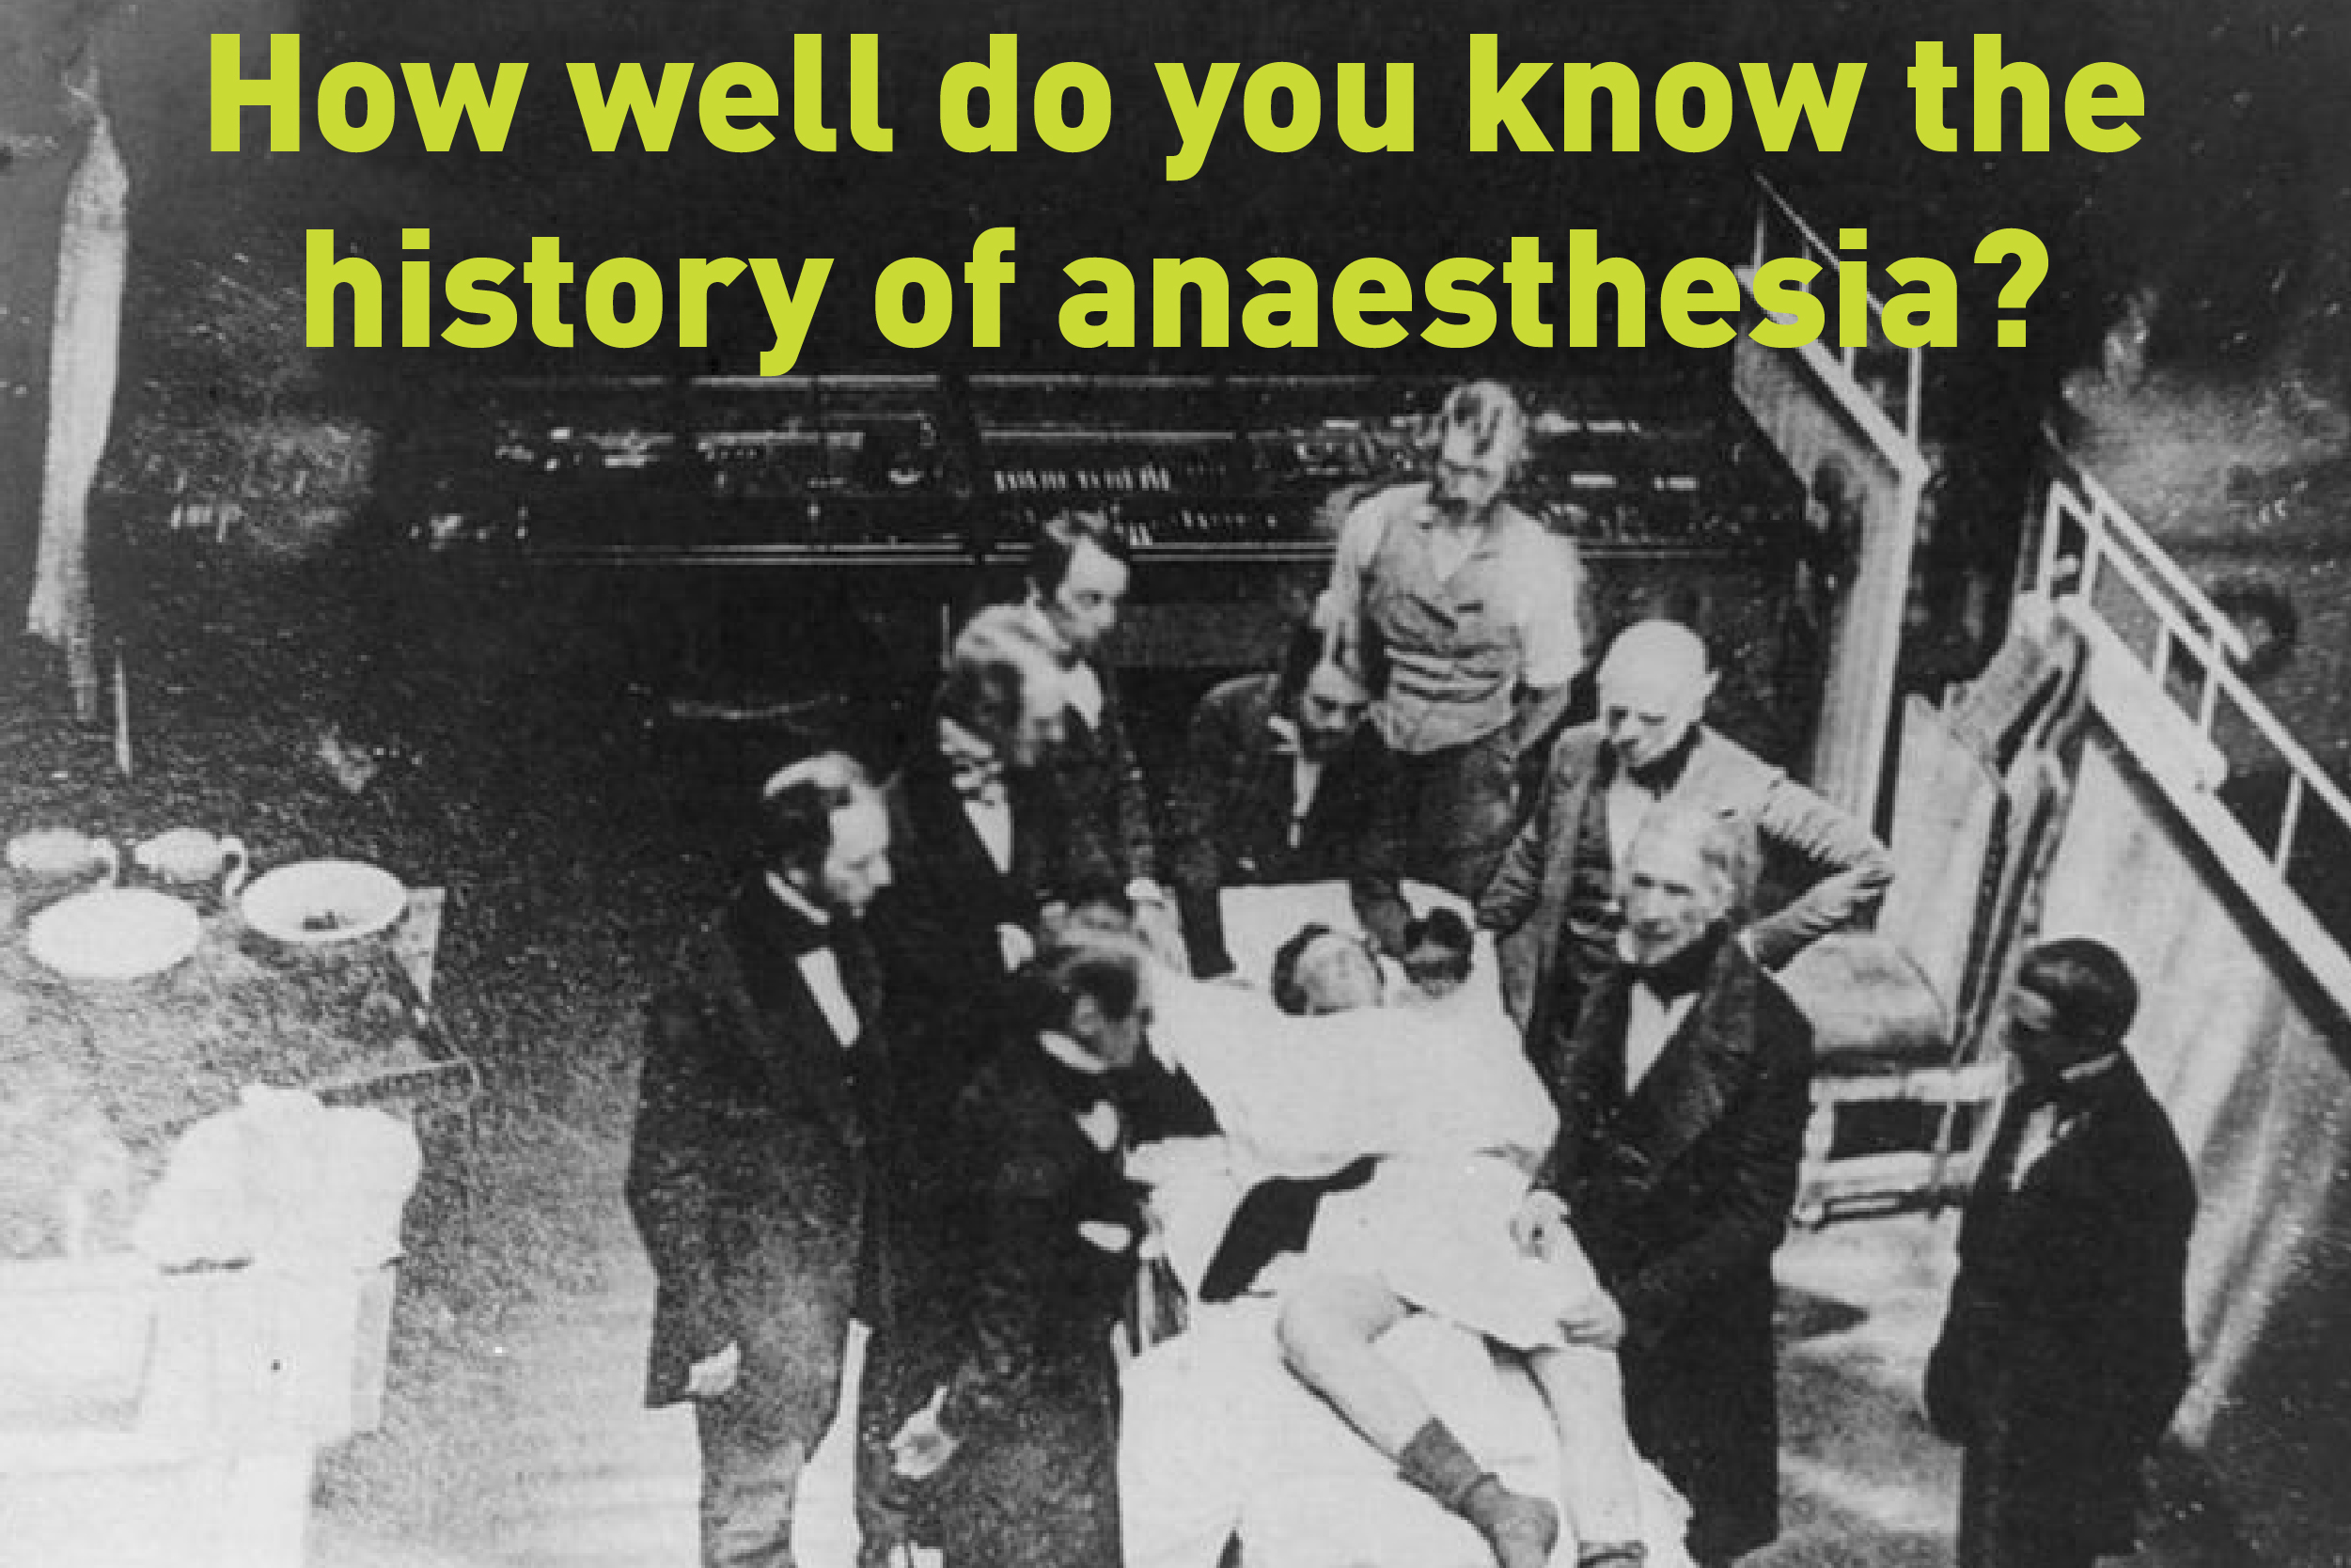 How Well Do You Know The History of Anaesthesia?